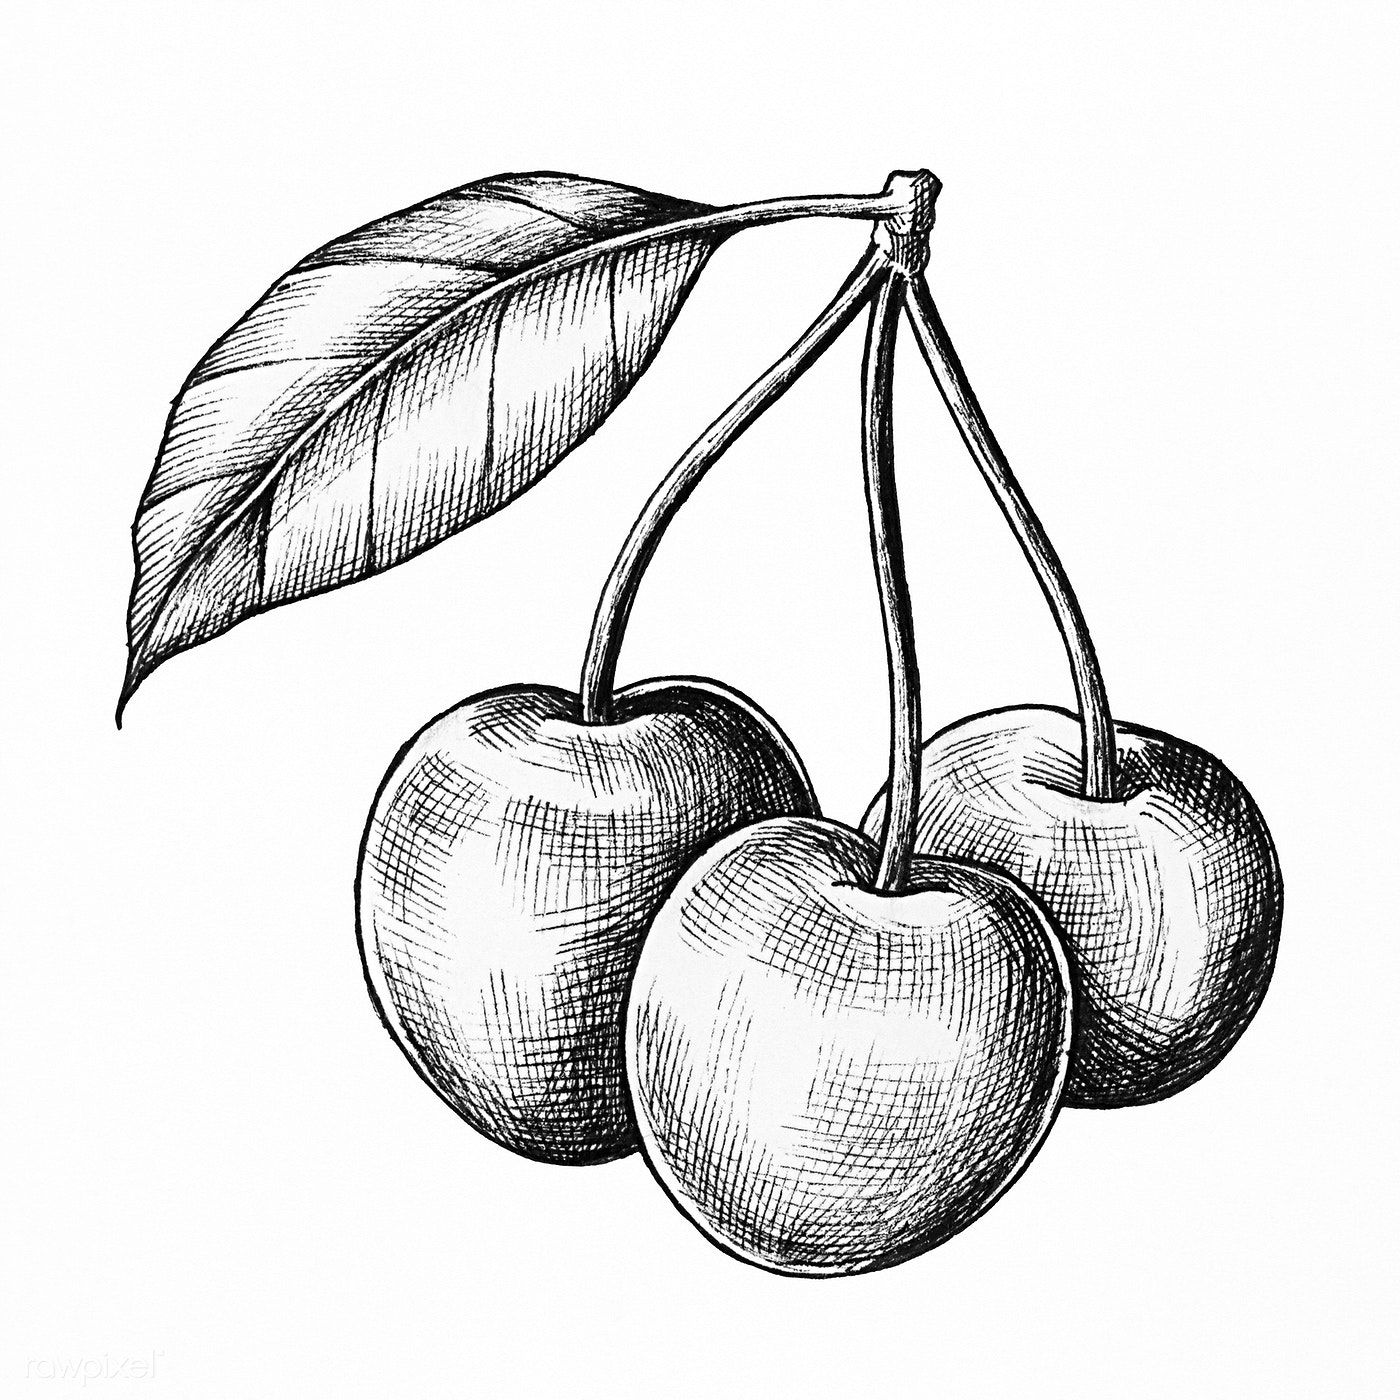 how to draw a cherry how to draw cherries step by step drawing tutorials to how a cherry draw